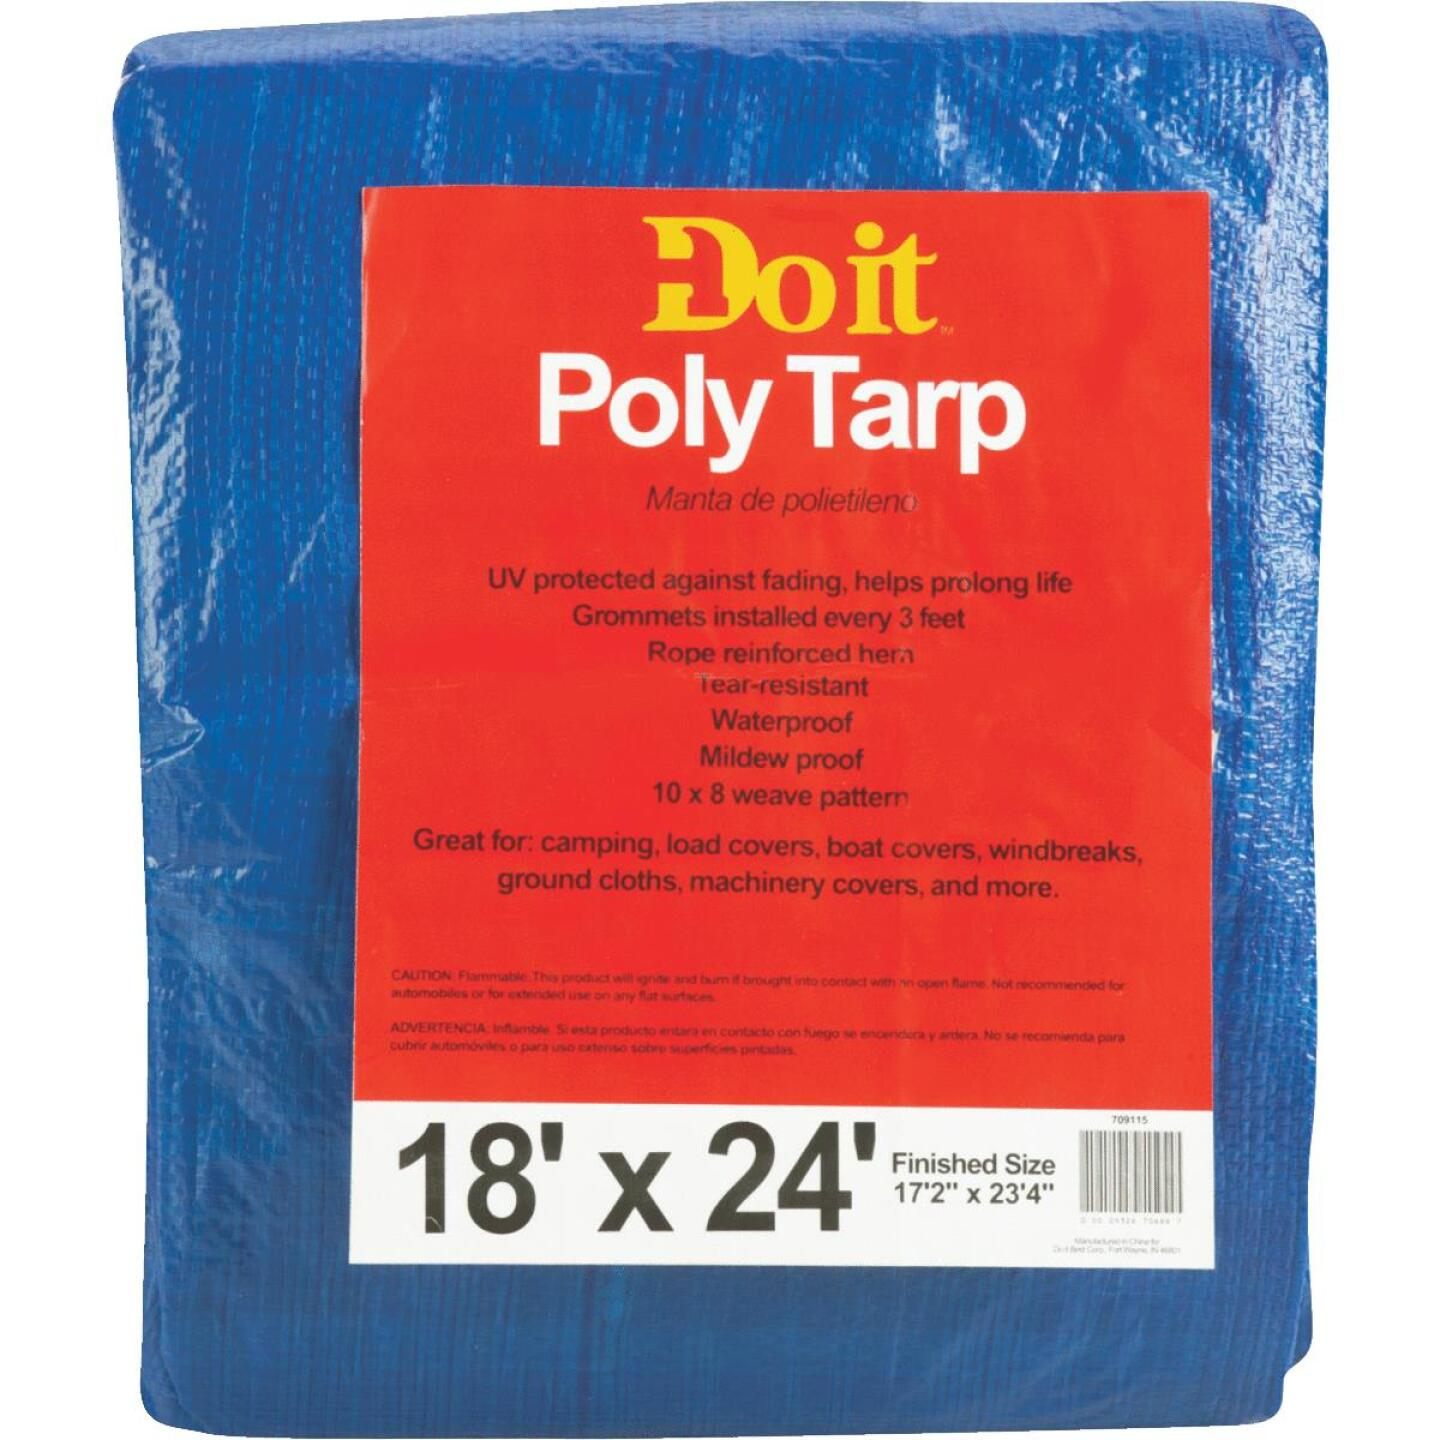 Do it Blue Woven 18 Ft. x 24 Ft. Medium Duty Poly Tarp Image 1